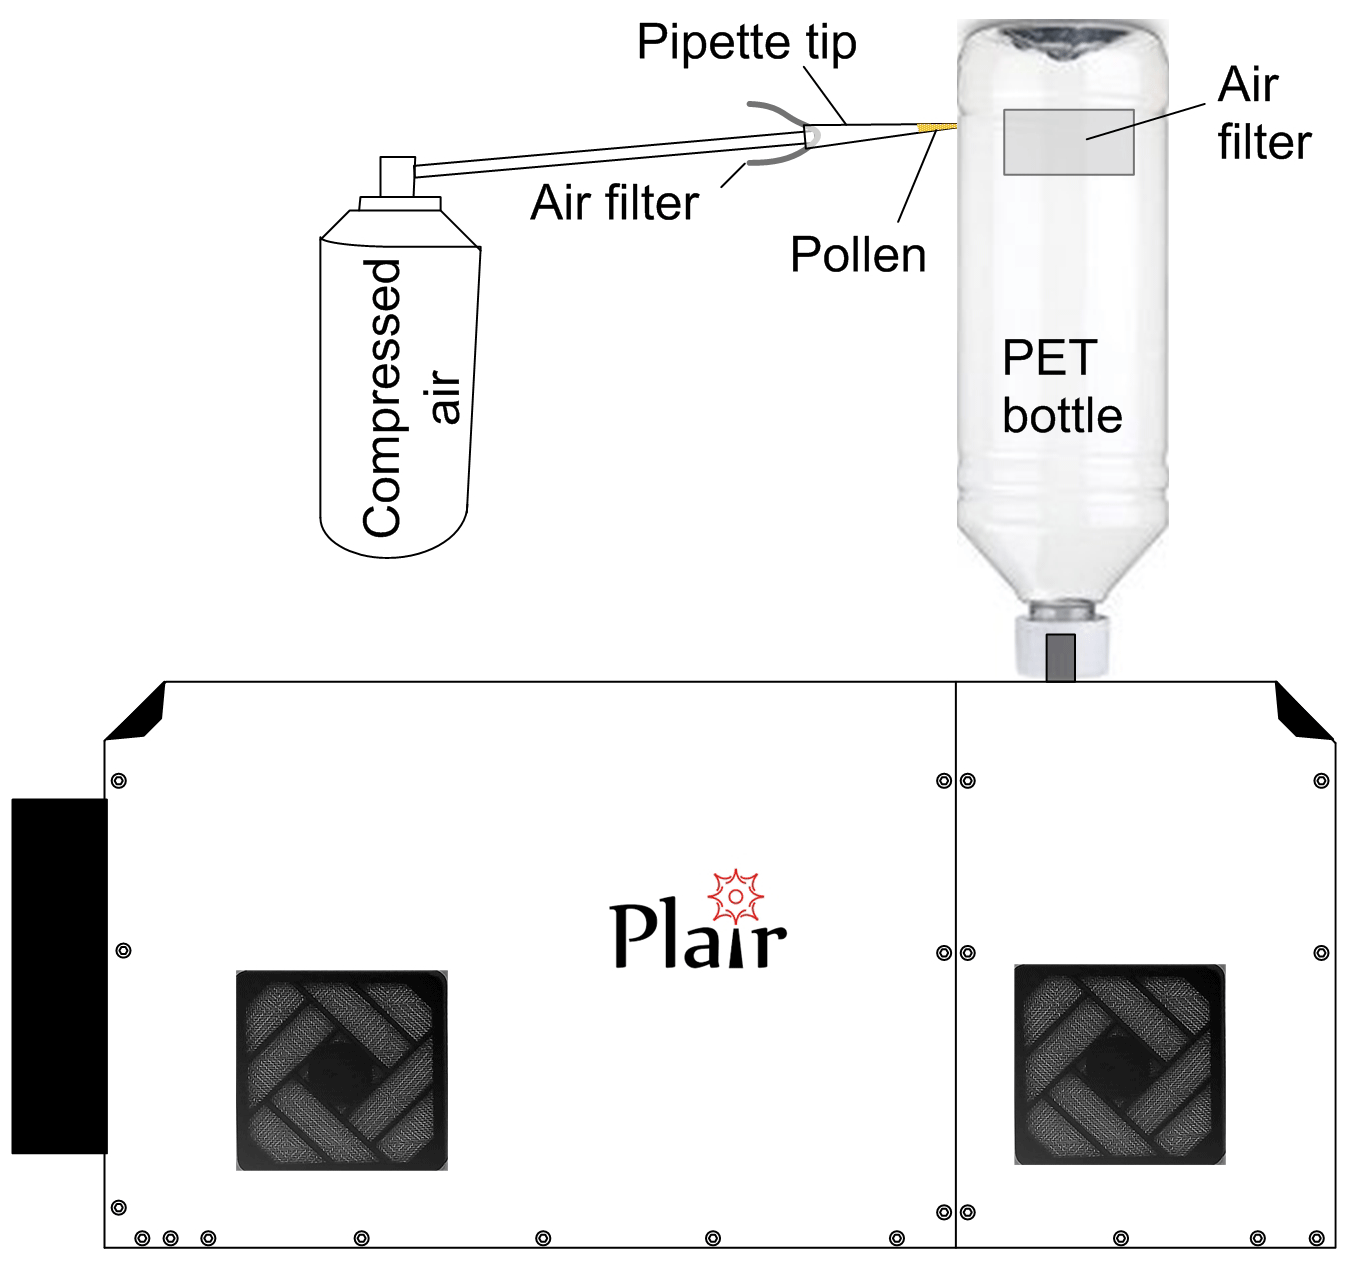 AMT - Automatic pollen recognition with the Rapid-E particle counter